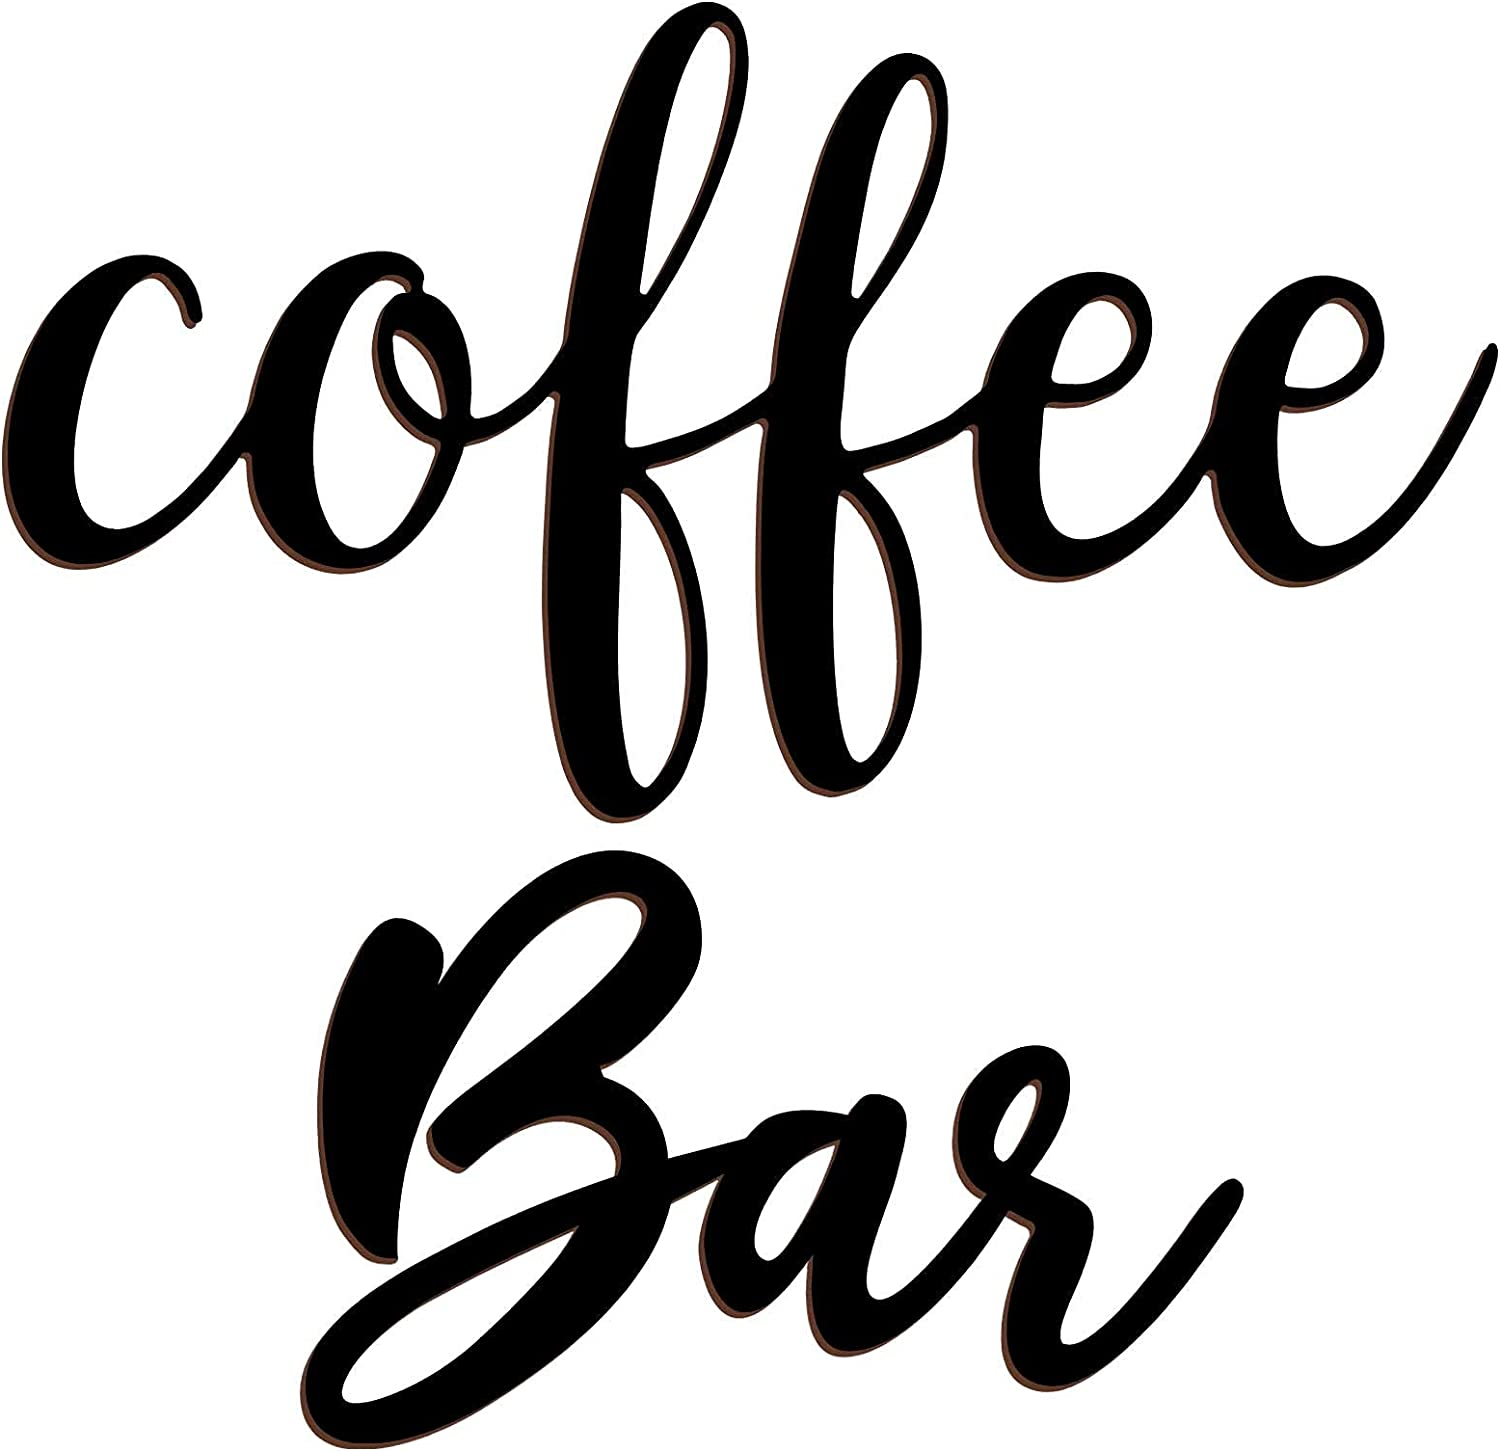 Jetec Coffee Bar Wooden Cutout Sign, Rustic Wood Coffee Bar Wall Decor, Black Cutout Farmhouse Coffee Sign for Dining Room, Coffee, Kitchen Home Decor